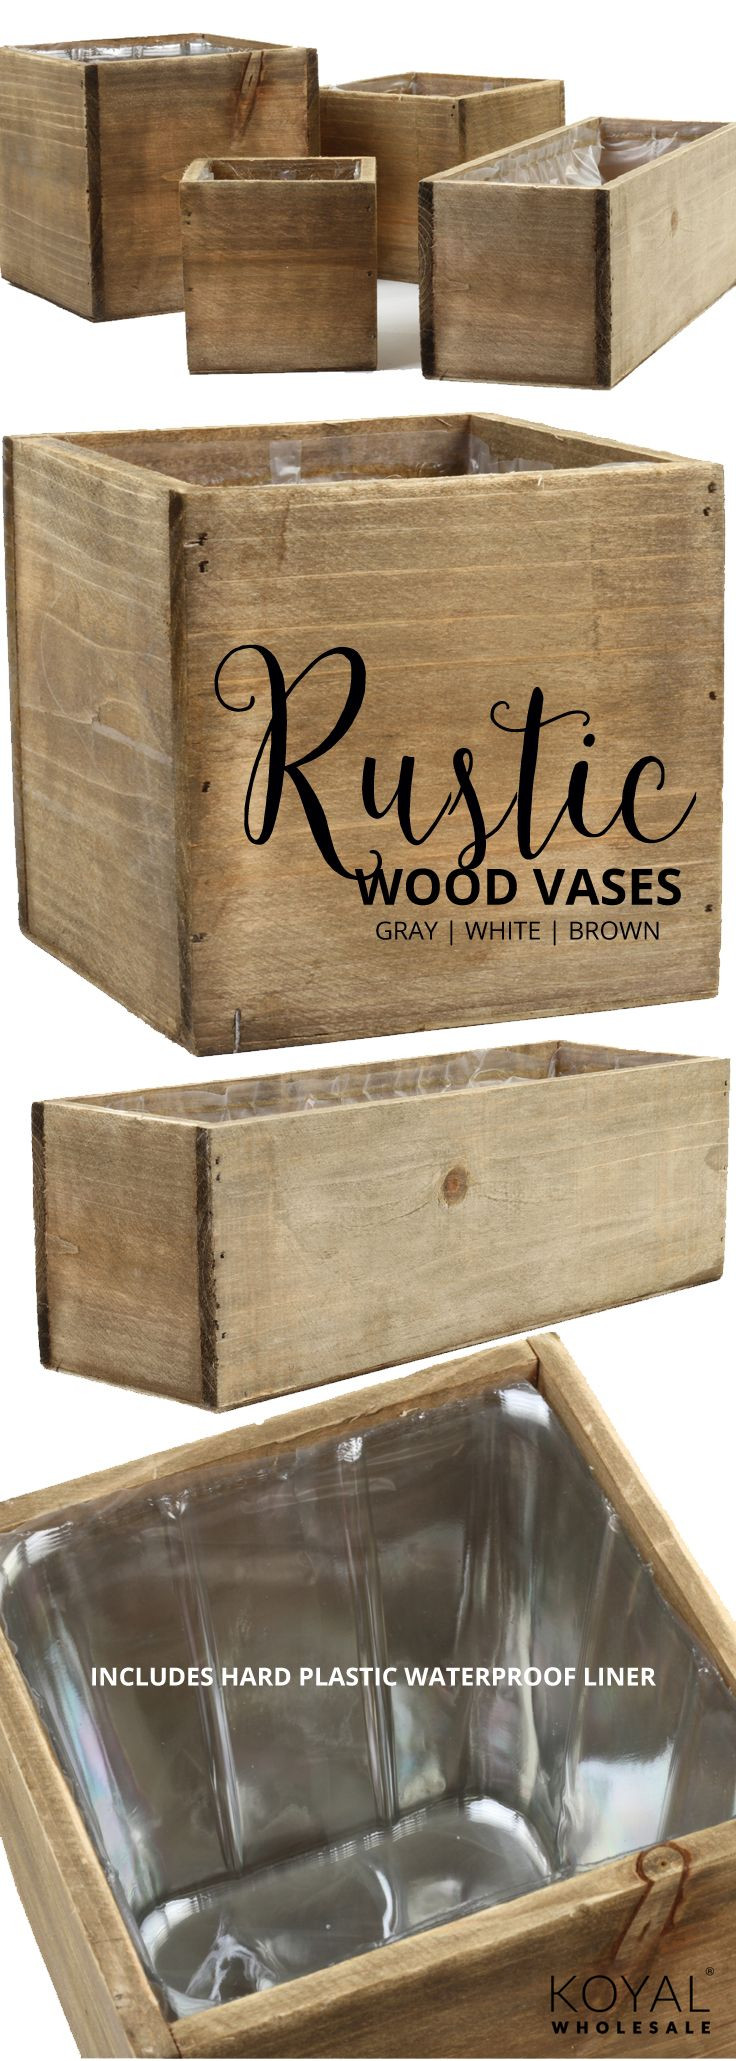 tall wooden vases wholesale of 468 best burlap wedding ideas images on pinterest table centers inside koyal wholesale rustic wood flower vases in bulk 3 colors shabby white distressed